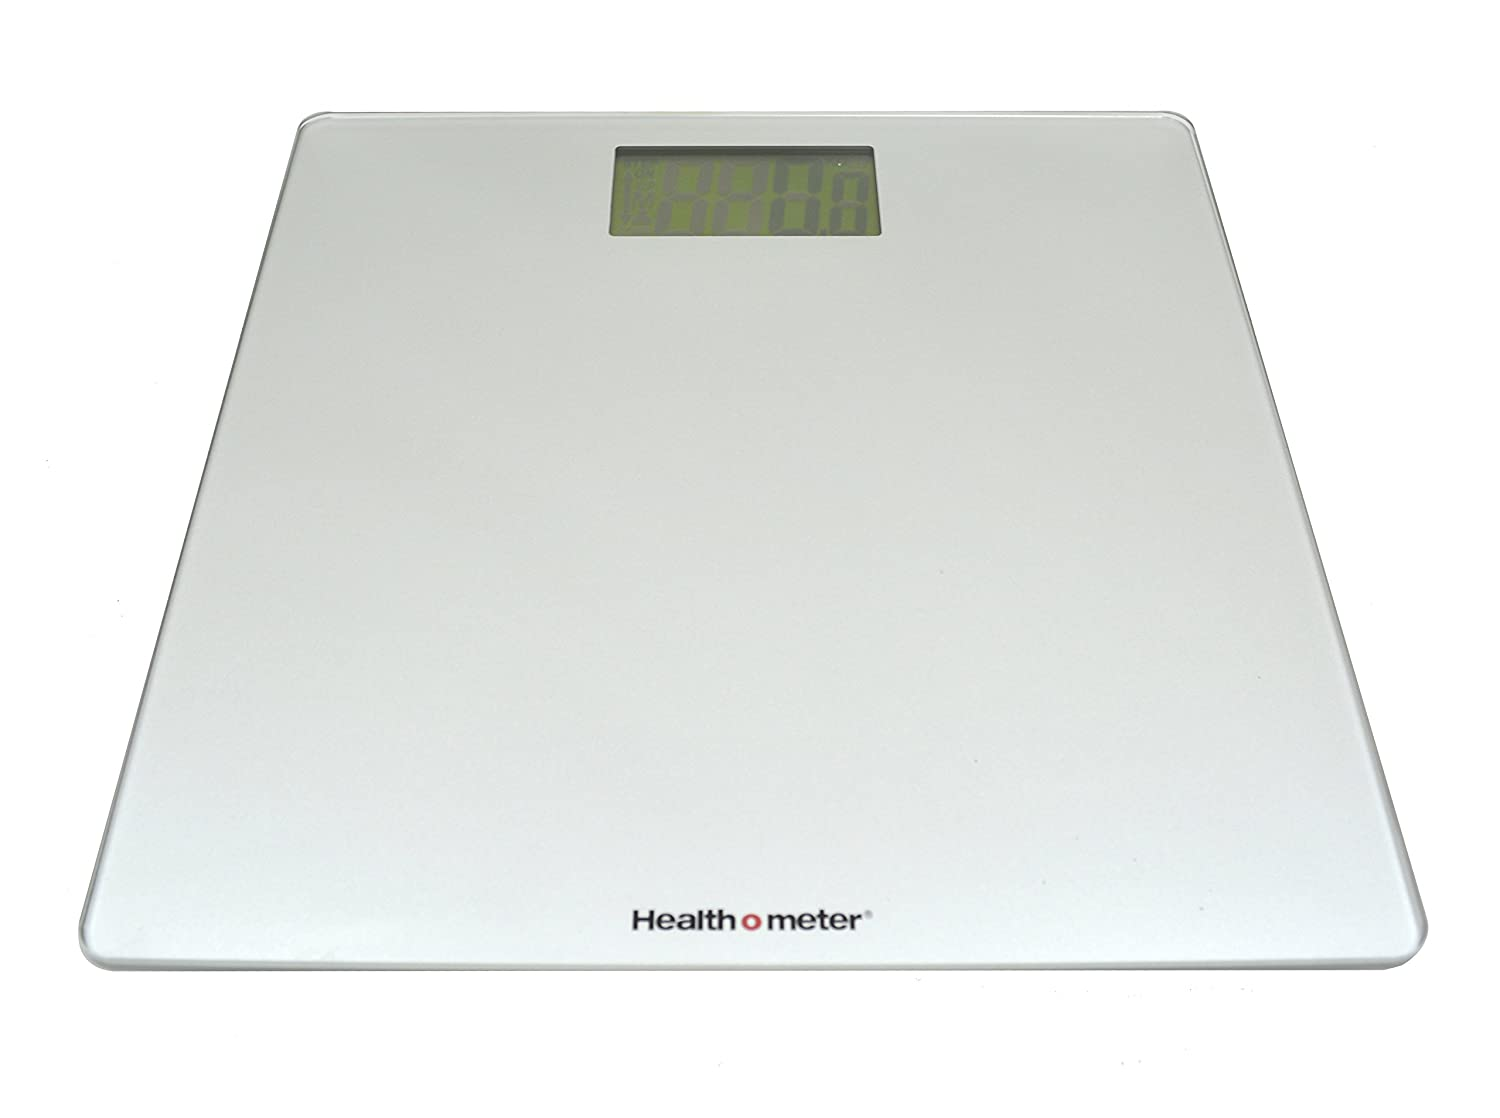 Amazon.com: Health O meter Glass Weight Tracking Scale: Health & Personal Care